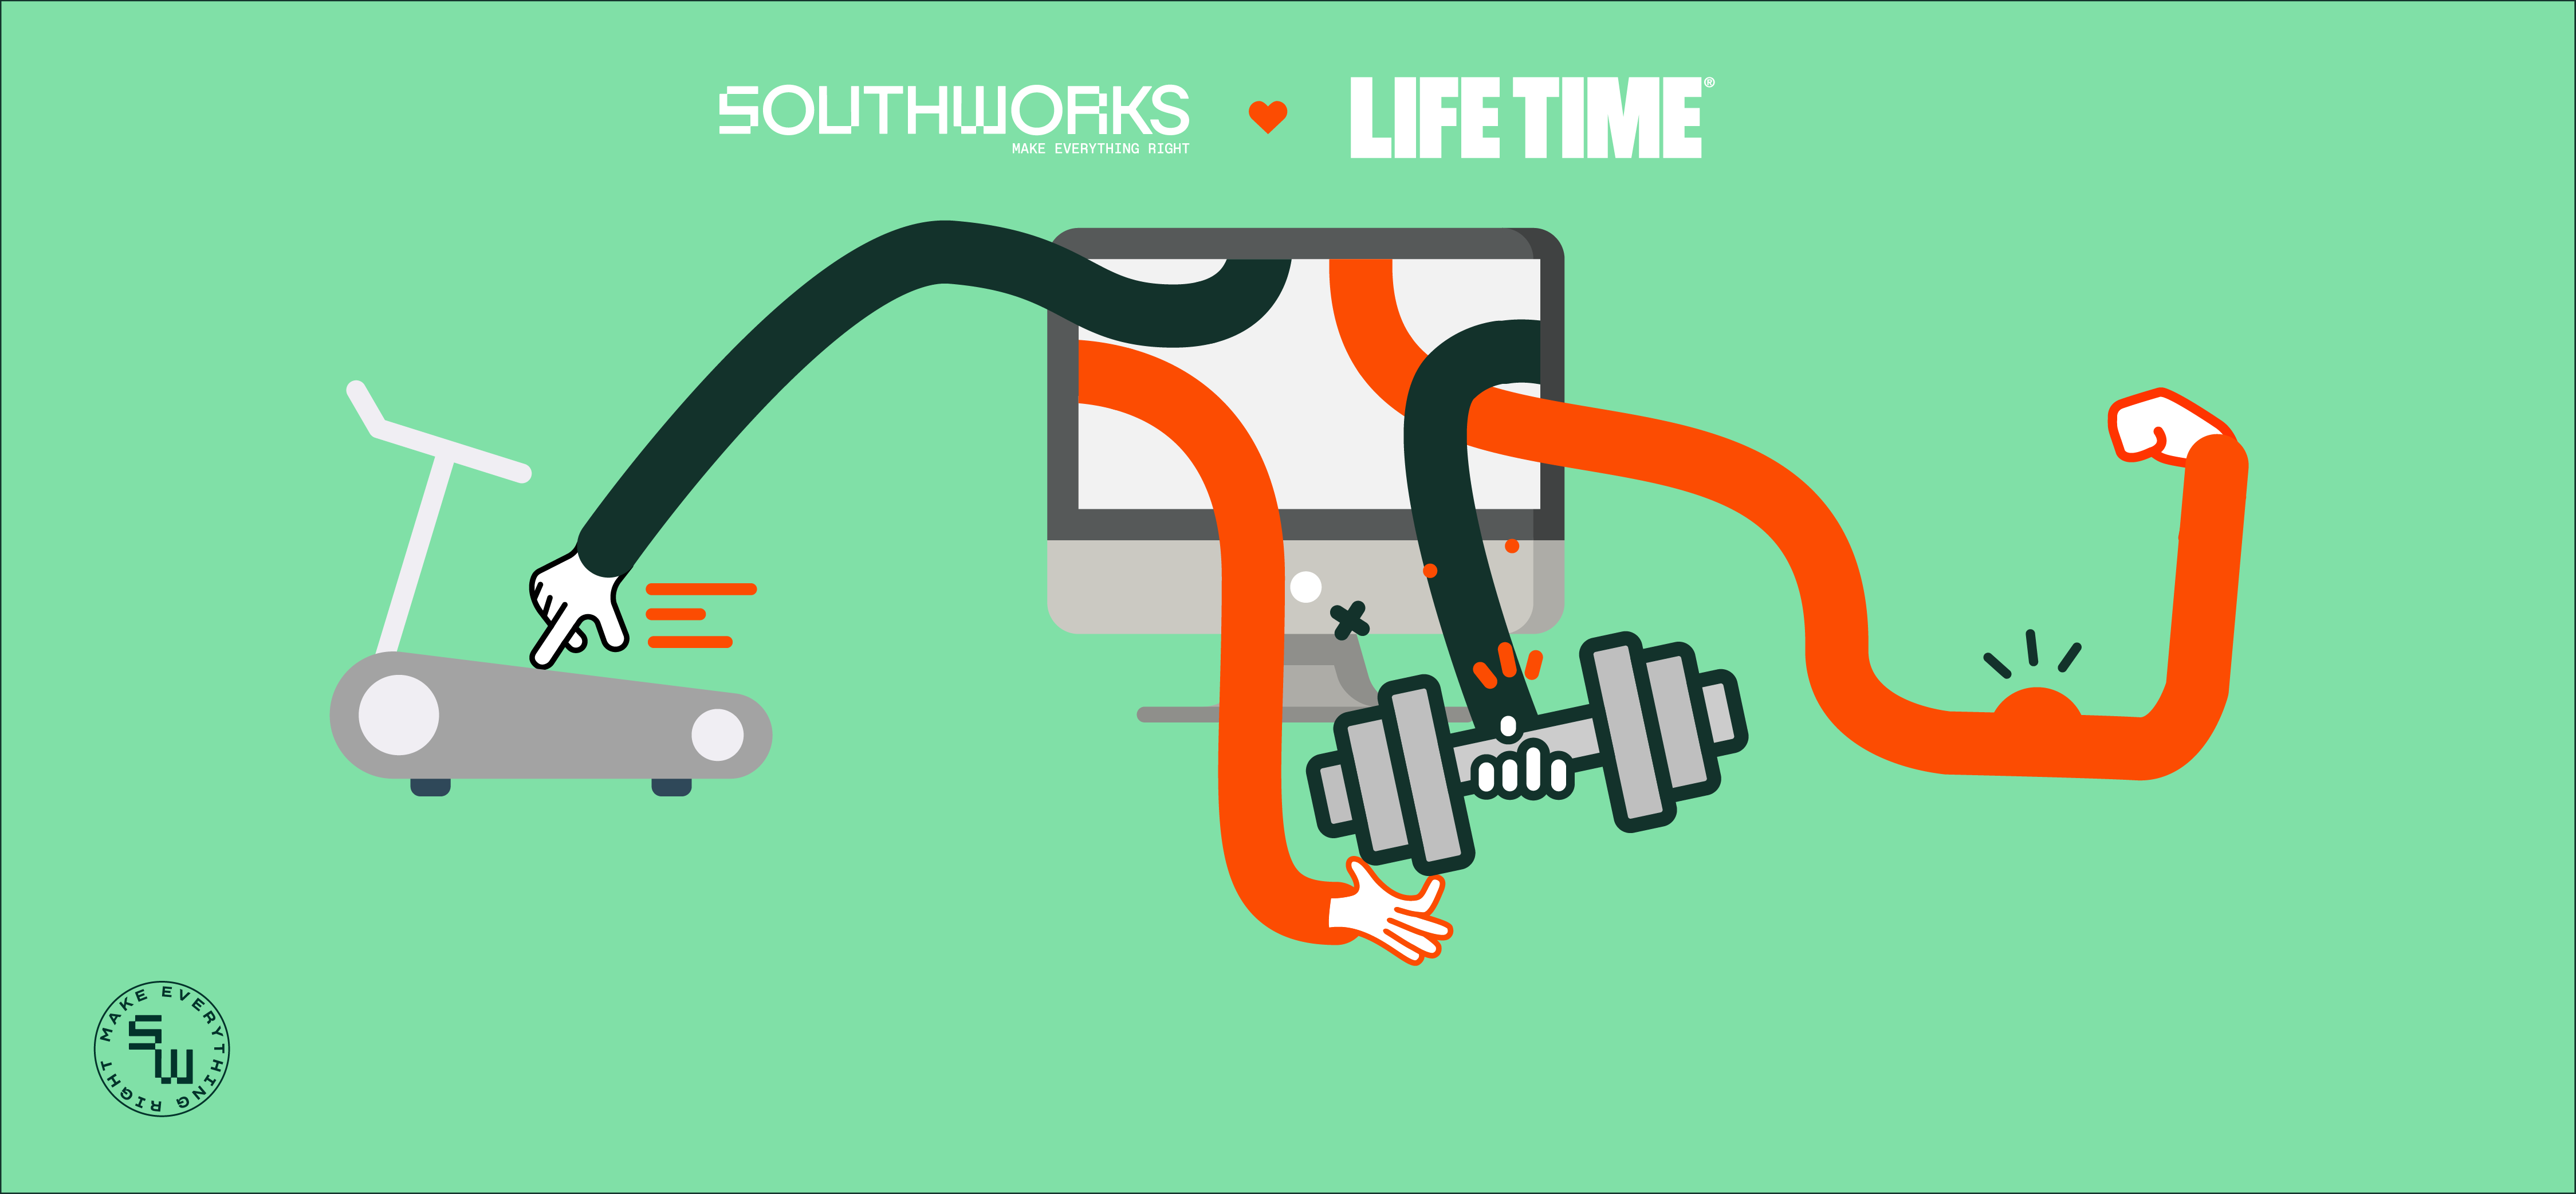 Life Time brings a personal and local experience into their members' homes in just eight weeks, thanks to a customized, high-quality video streaming solution from SOUTHWORKS.